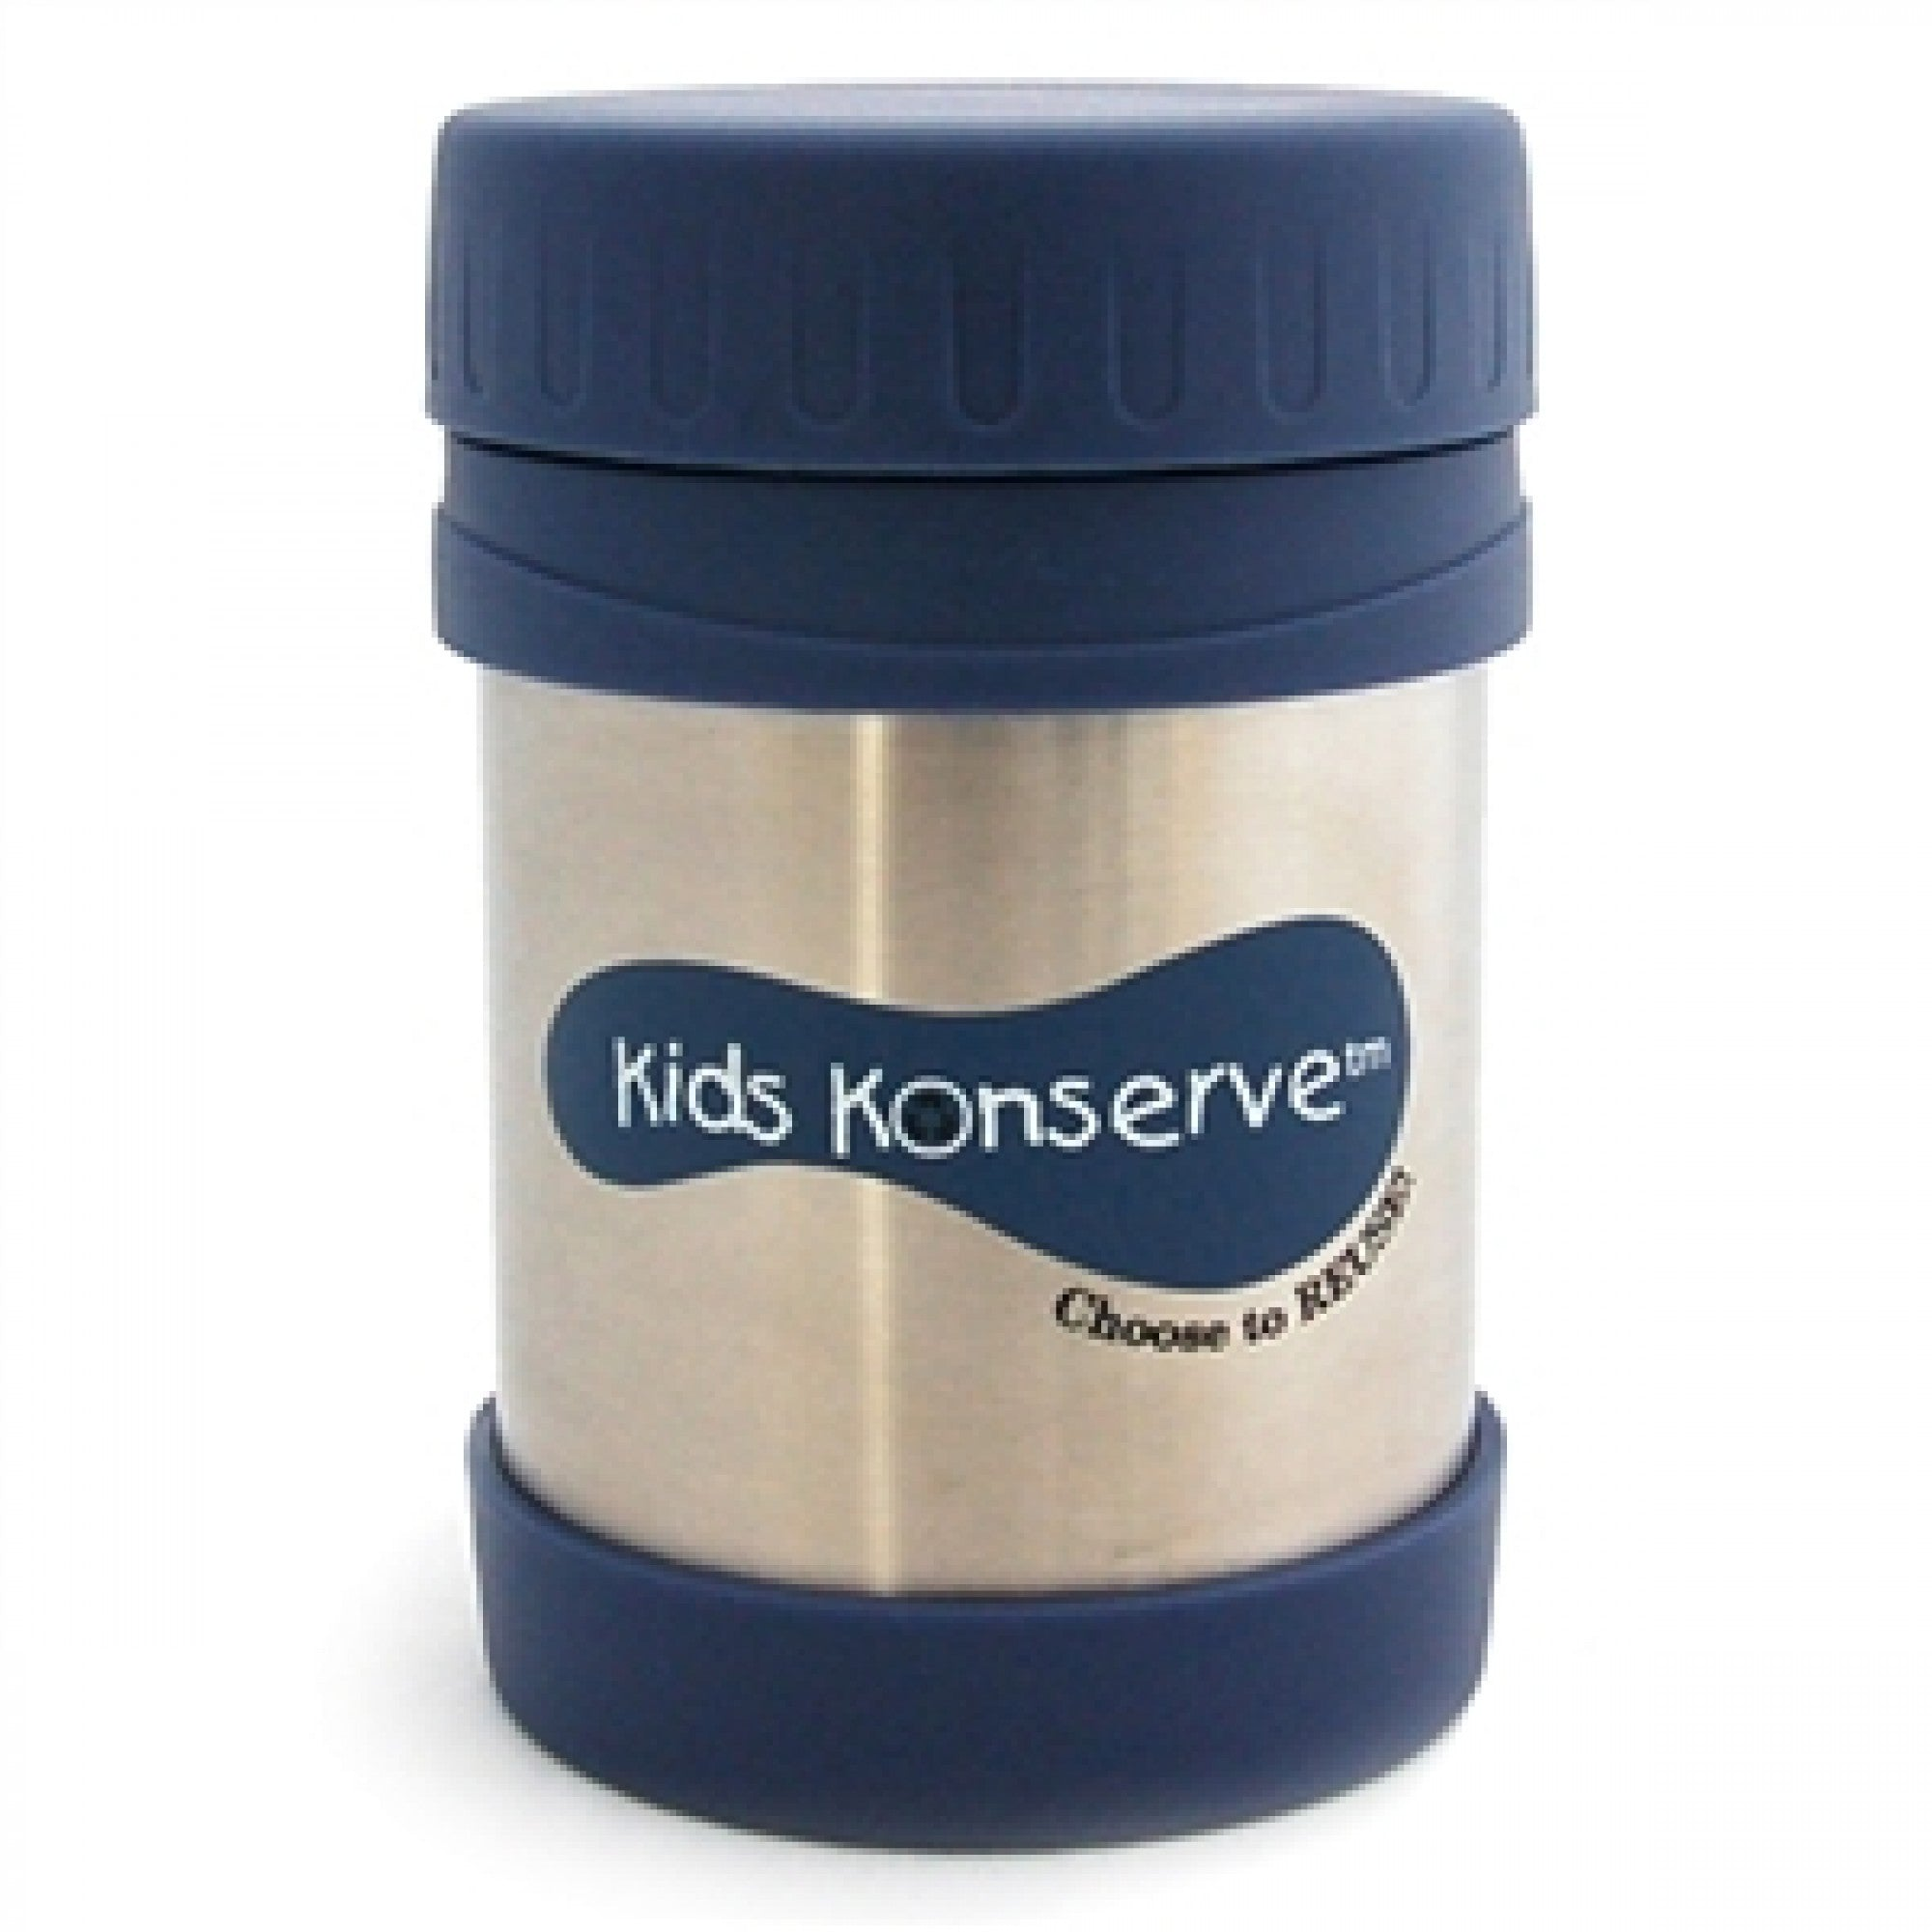 Kids Konserve Insulated Food Jar   - Kids Konserve - Little Earth Nest - 4